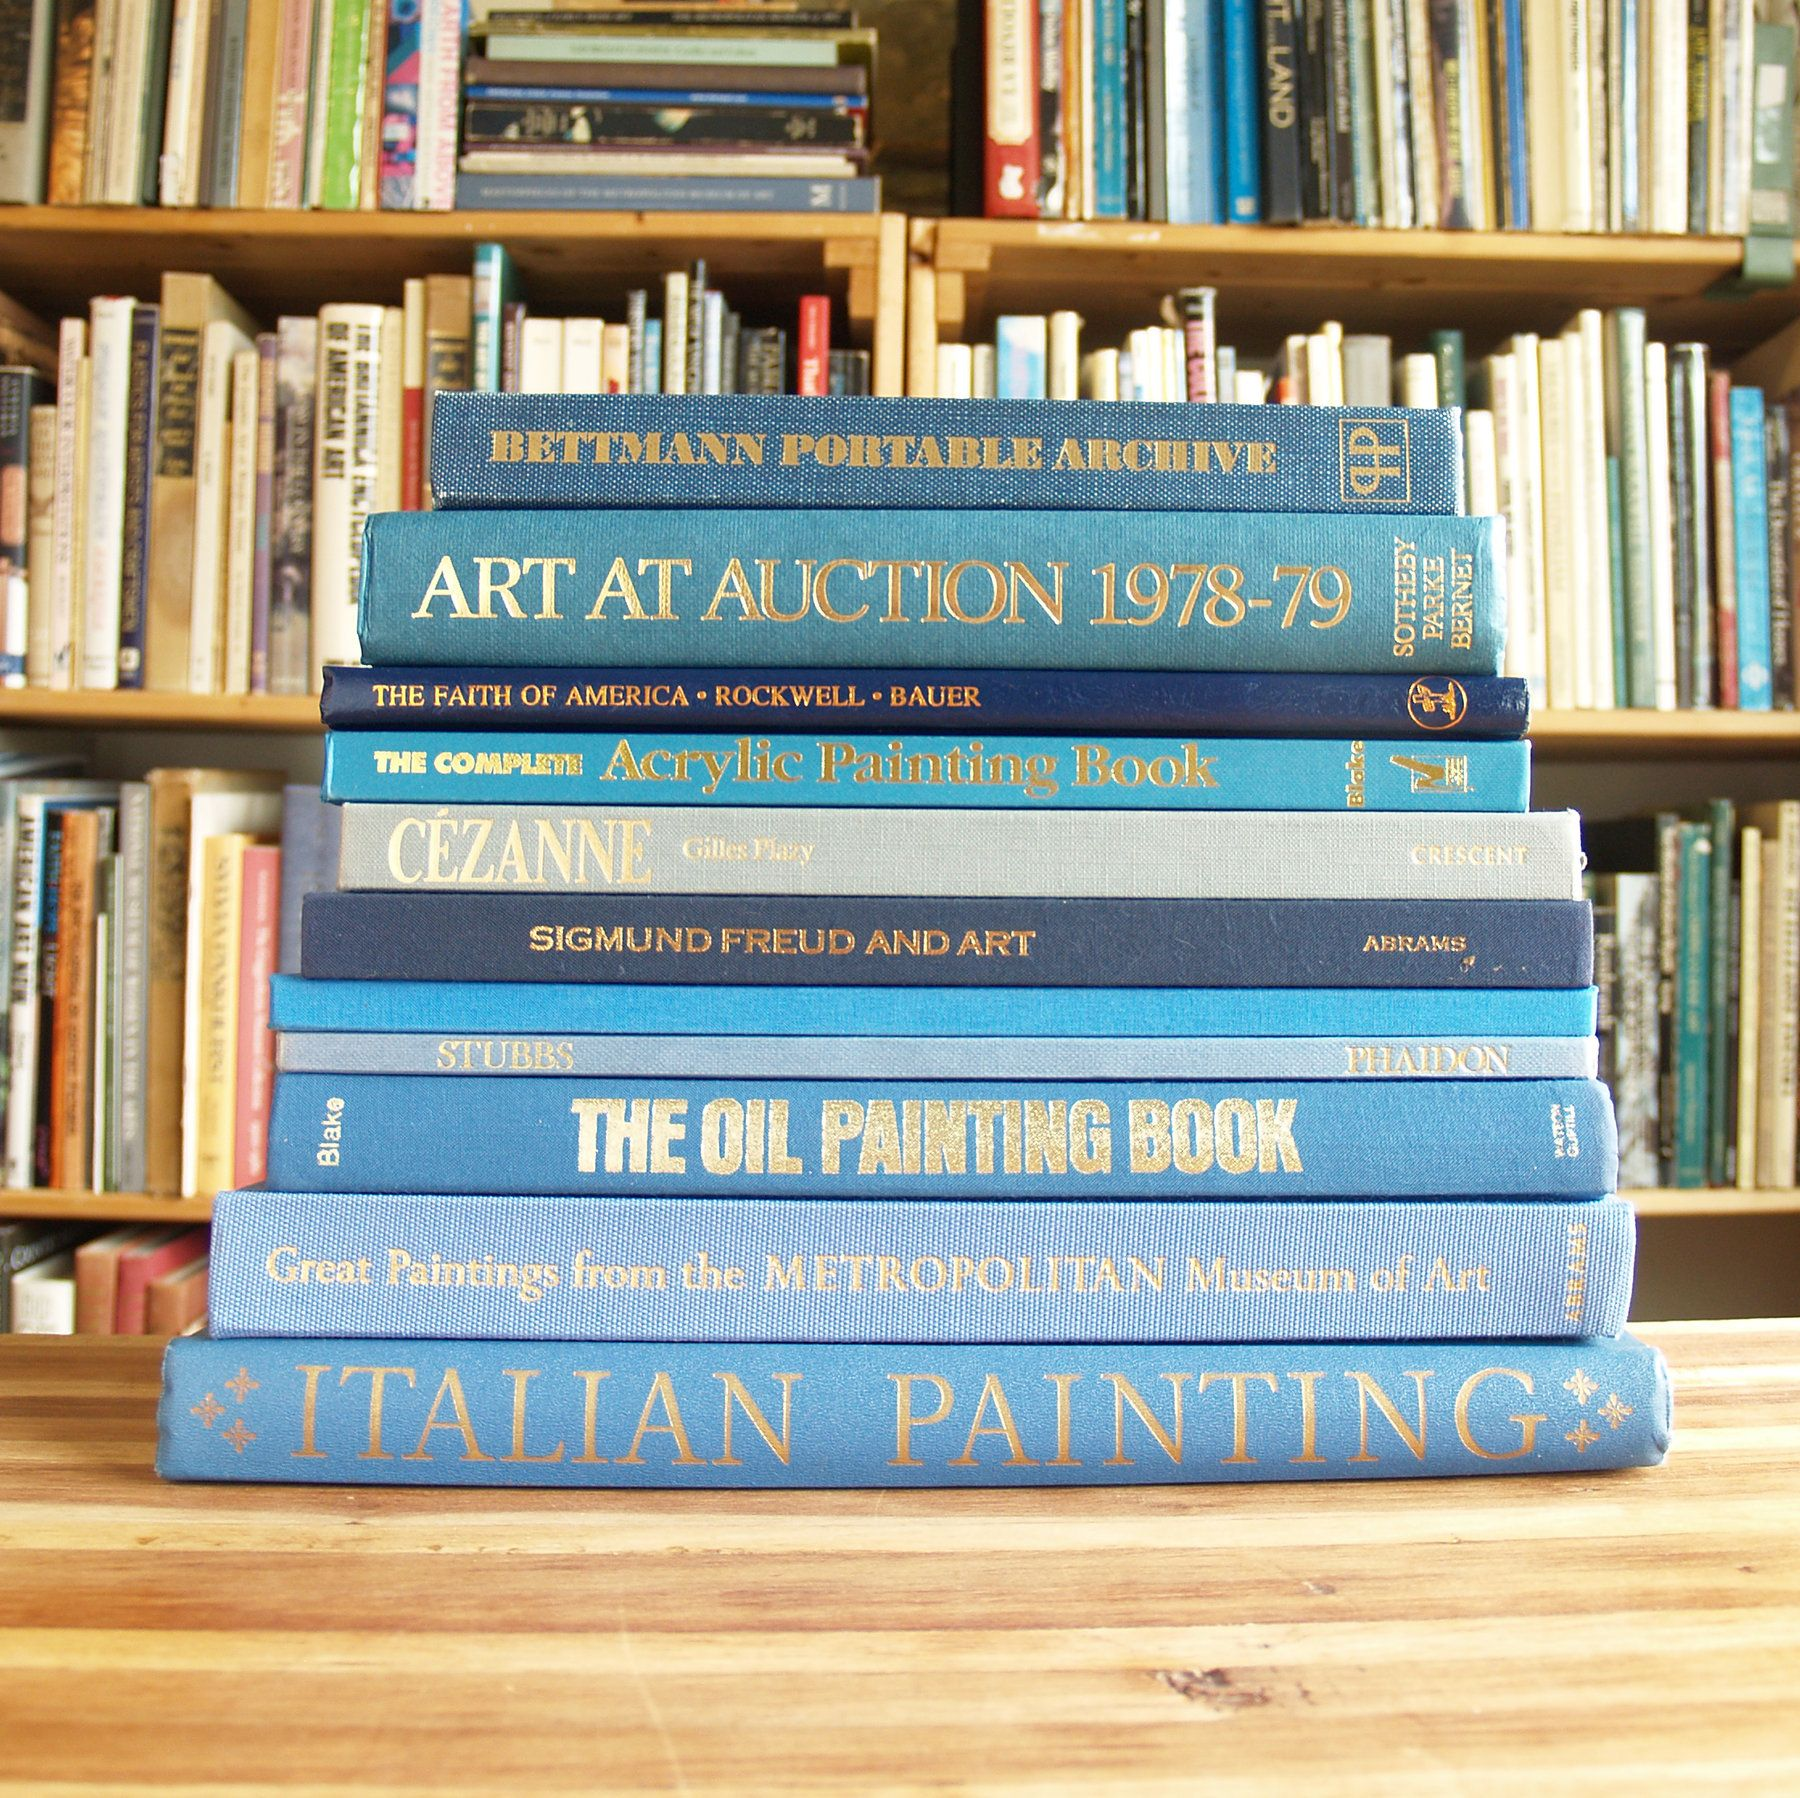 Collection Of 11 Large Coffee Table Books On Art In Blue Bindings